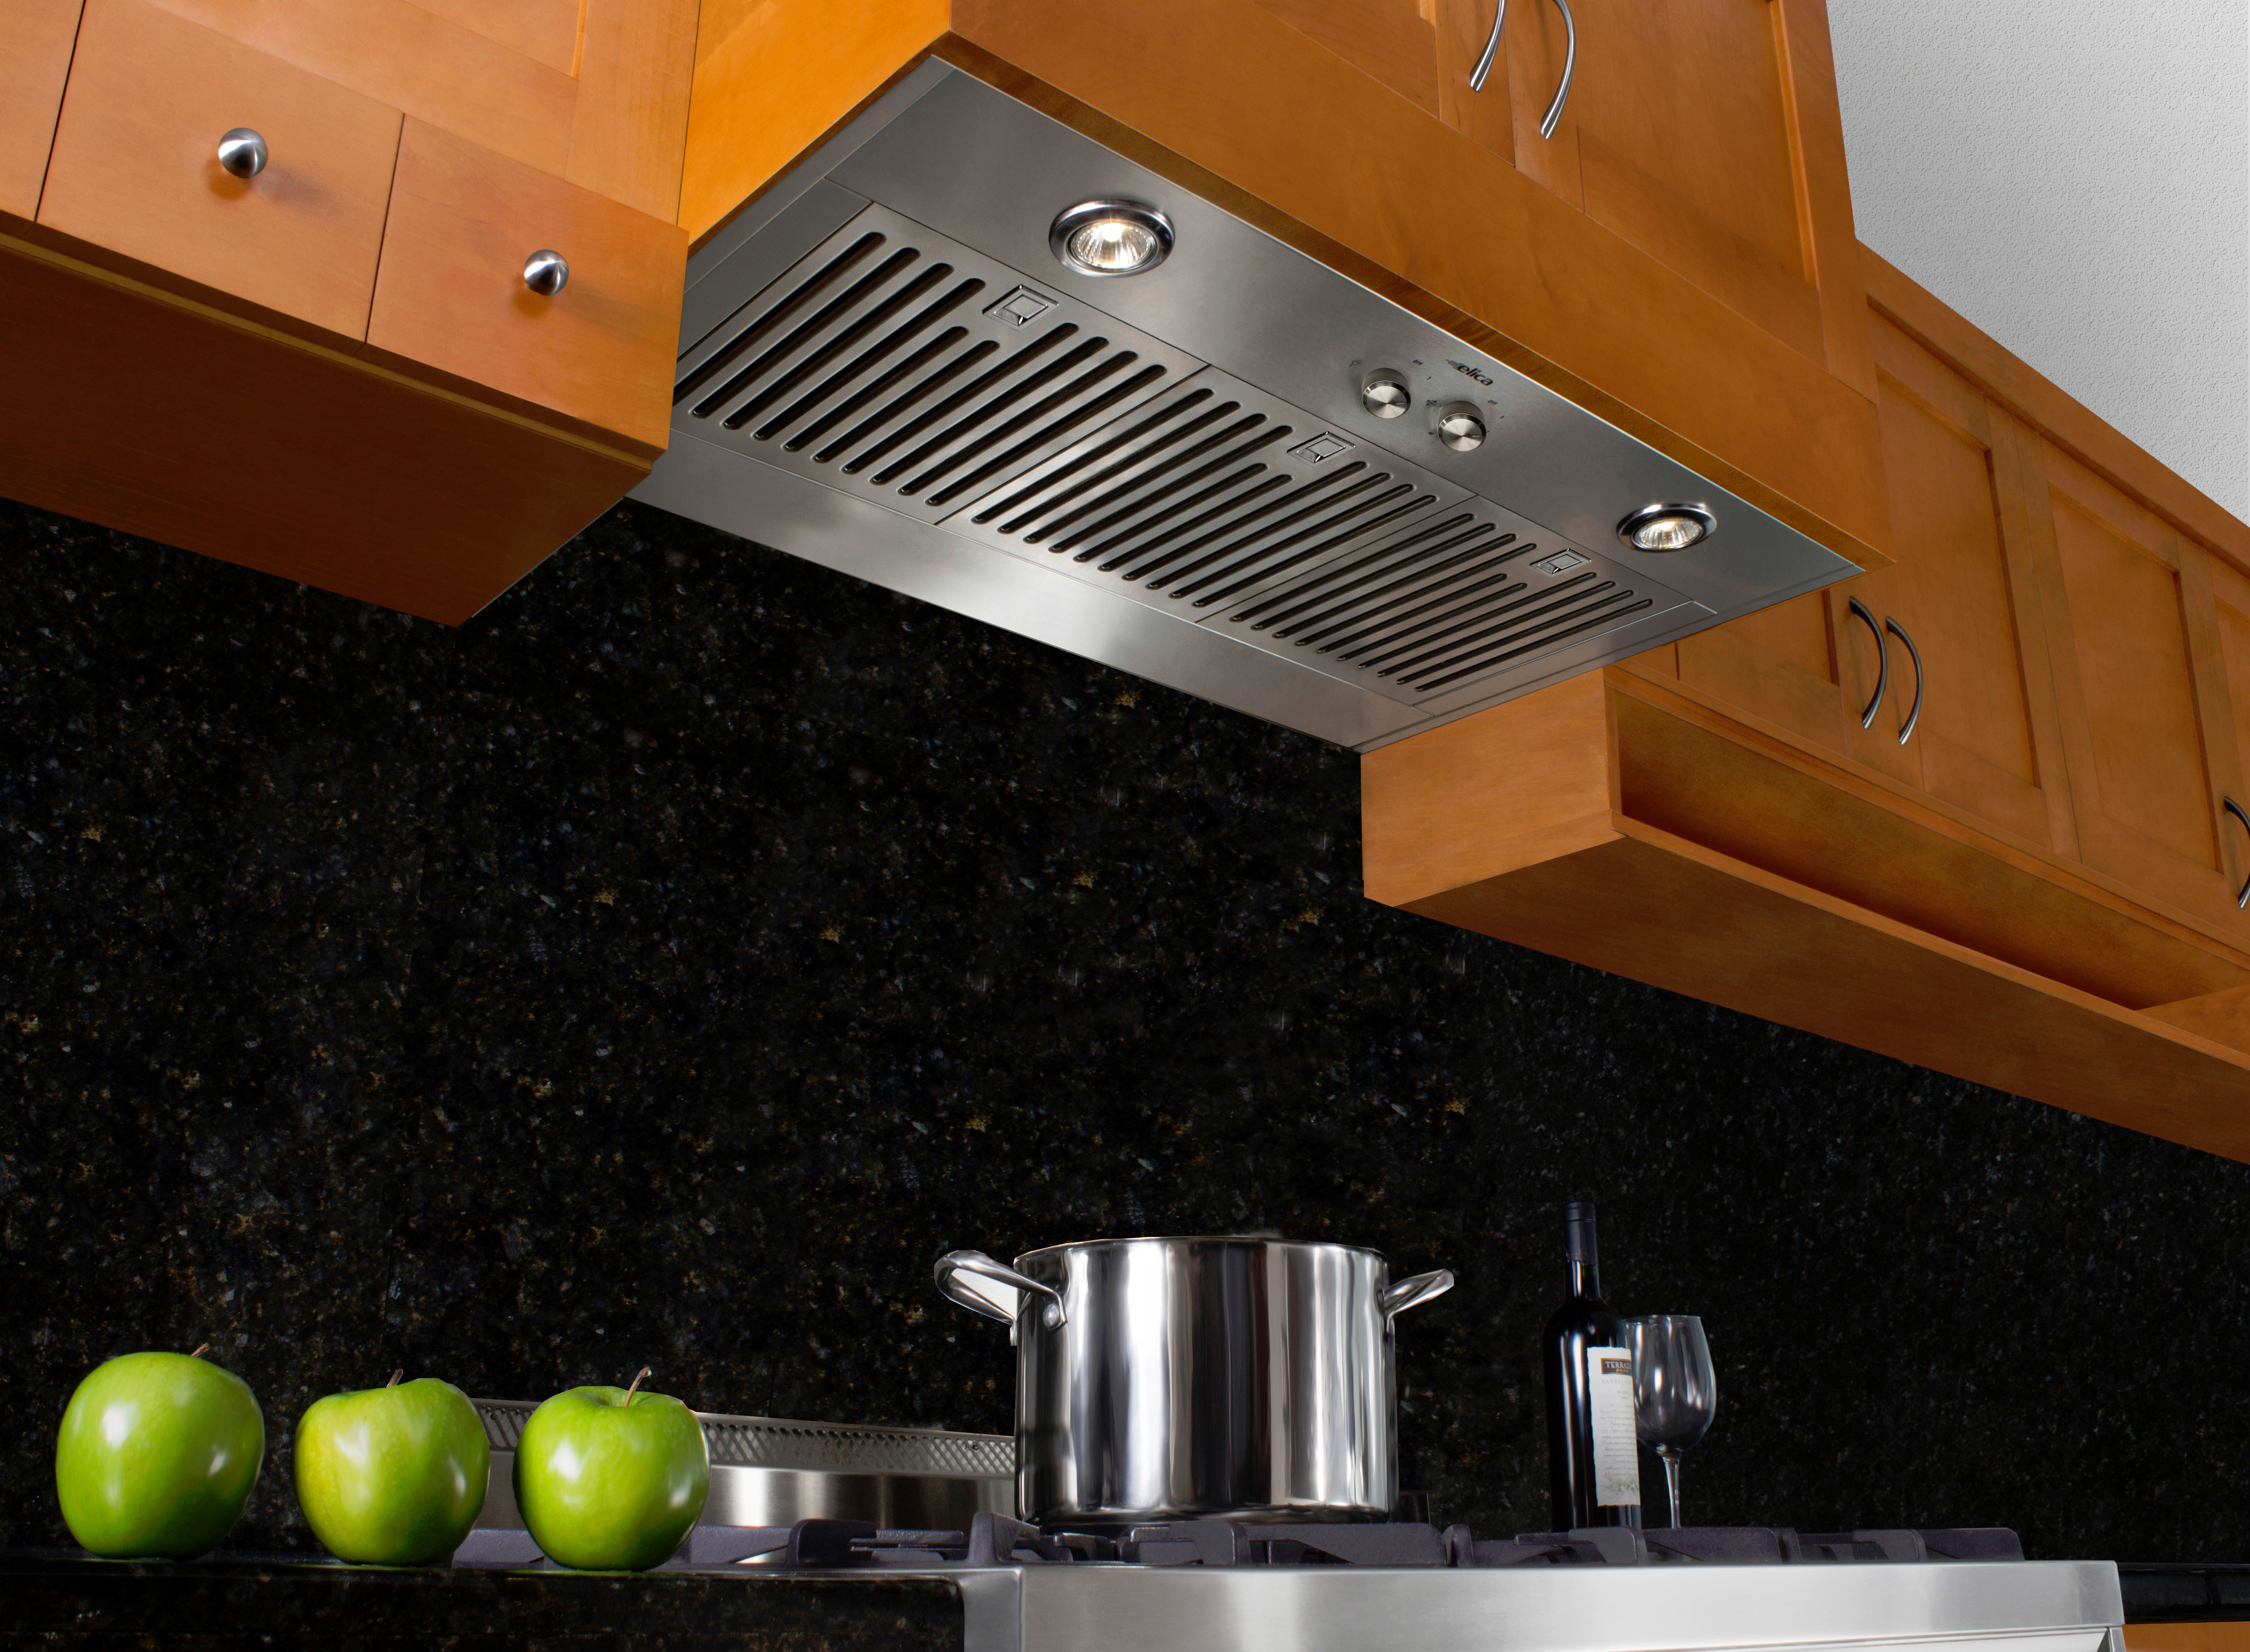 design pattern dining brown wood for range kitchen cabinet steel light decoration your with insert awesome backsplash tile hood stainless